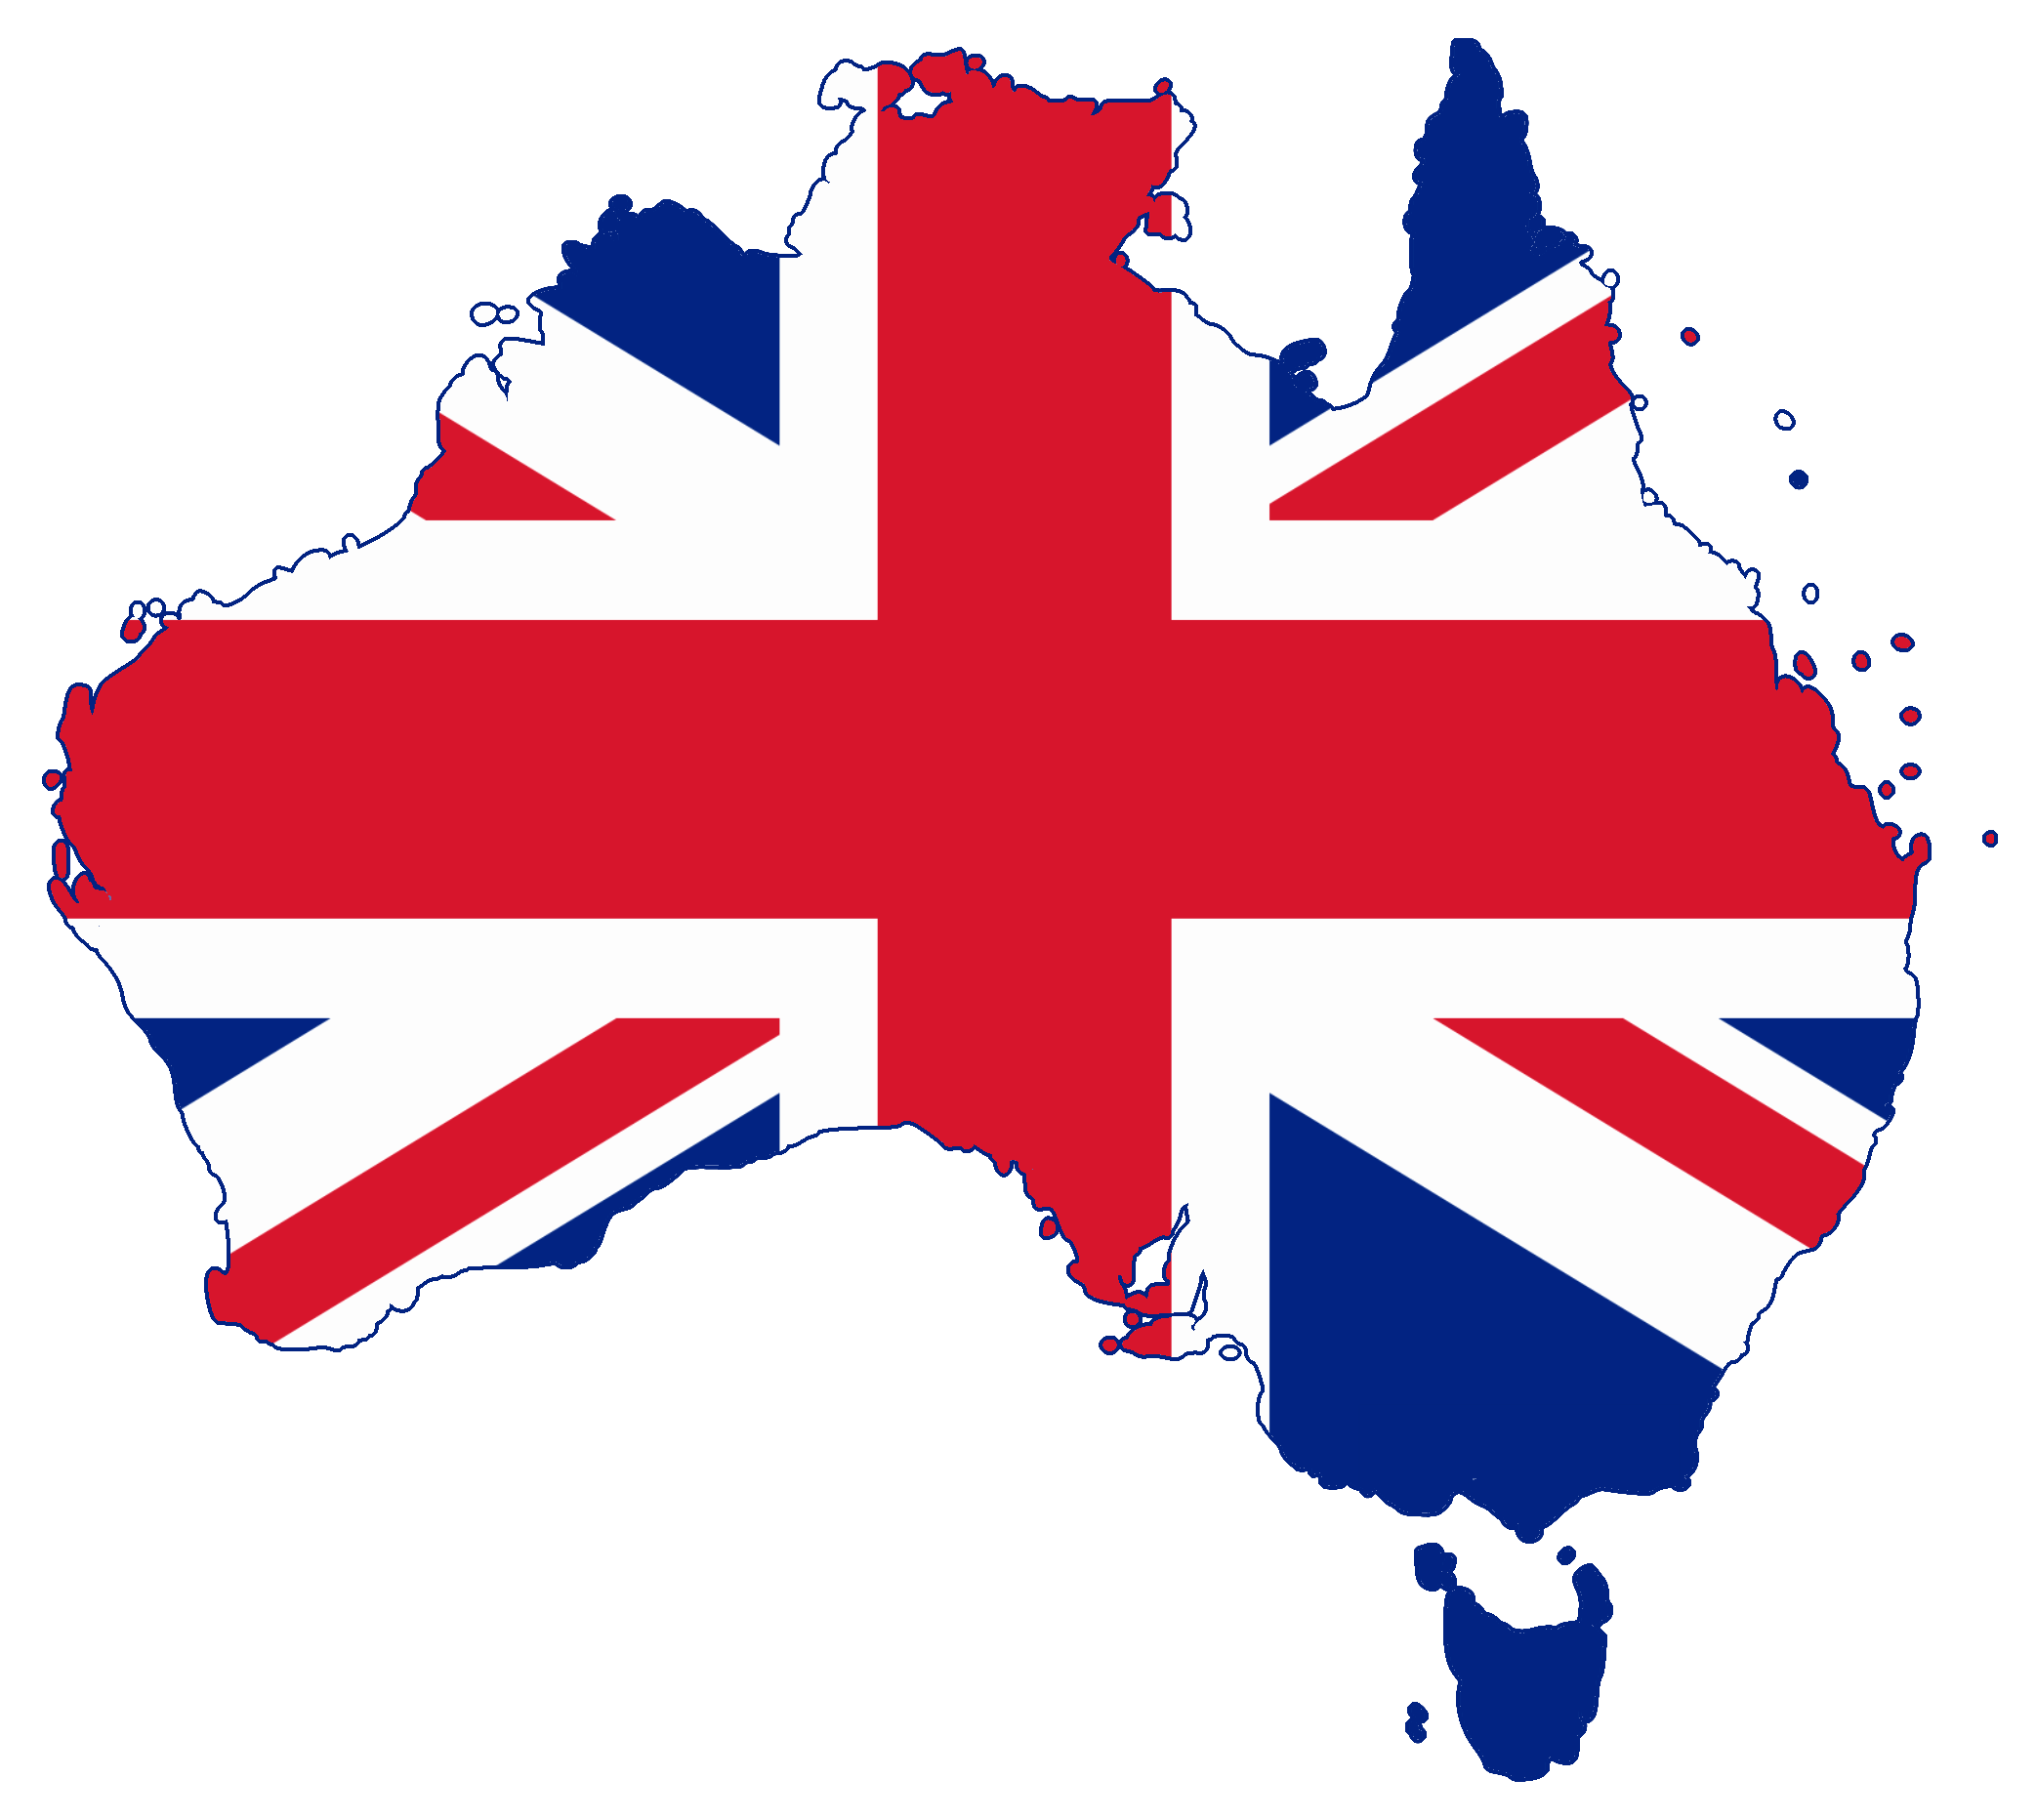 Australia Map With Flag.File Flag Map Of Australia United Kingdom Png Wikimedia Commons